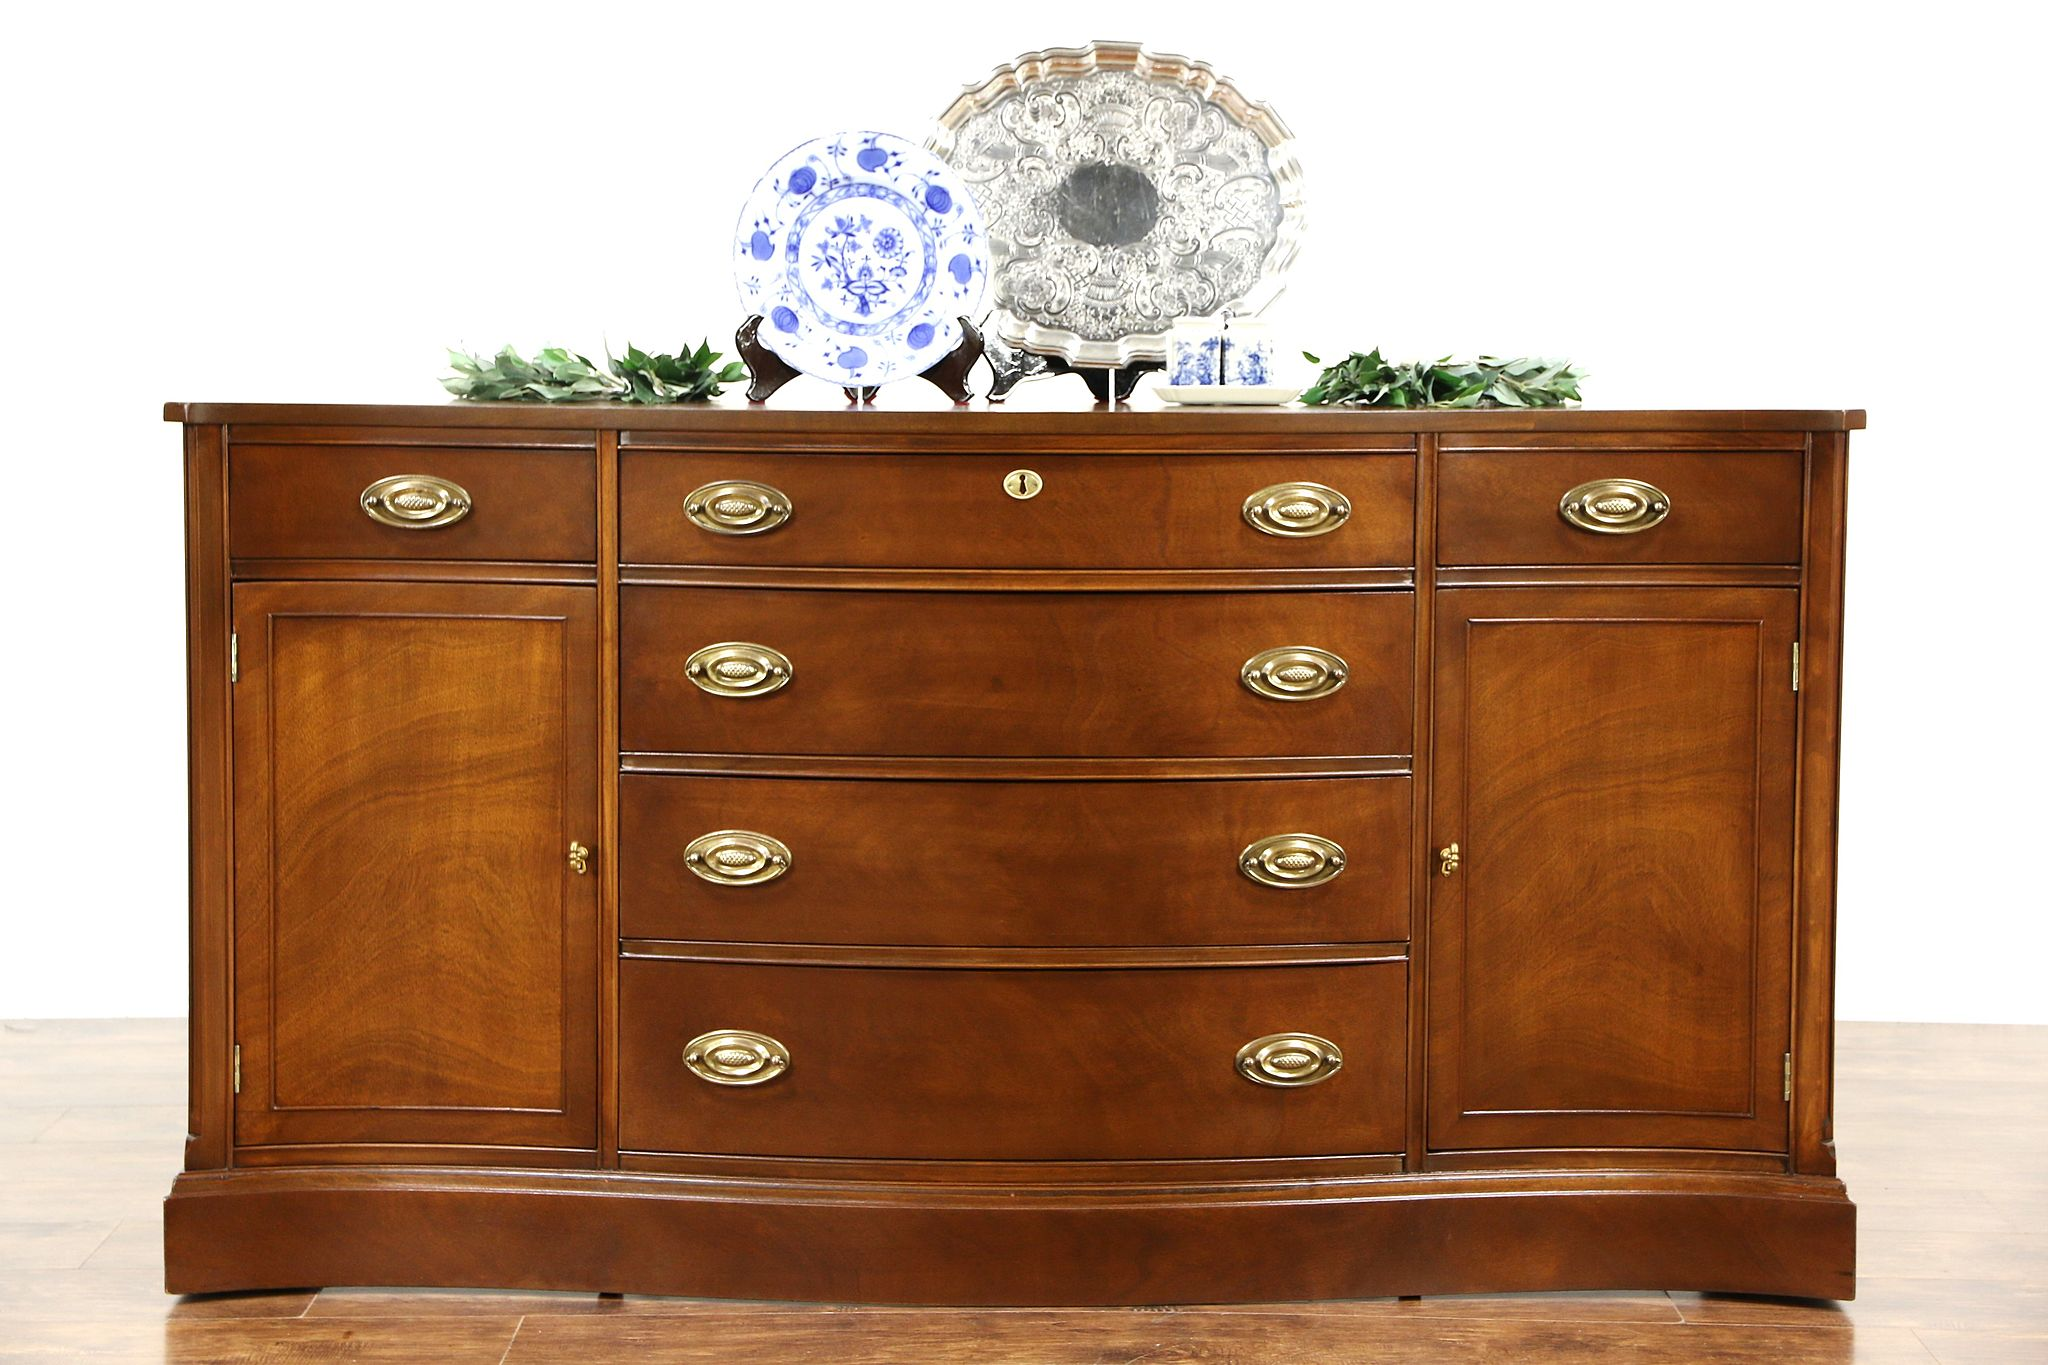 Picture of: Sold Traditional Vintage Mahogany Sideboard Server Or Buffet Serpentine Front Harp Gallery Antiques Furniture